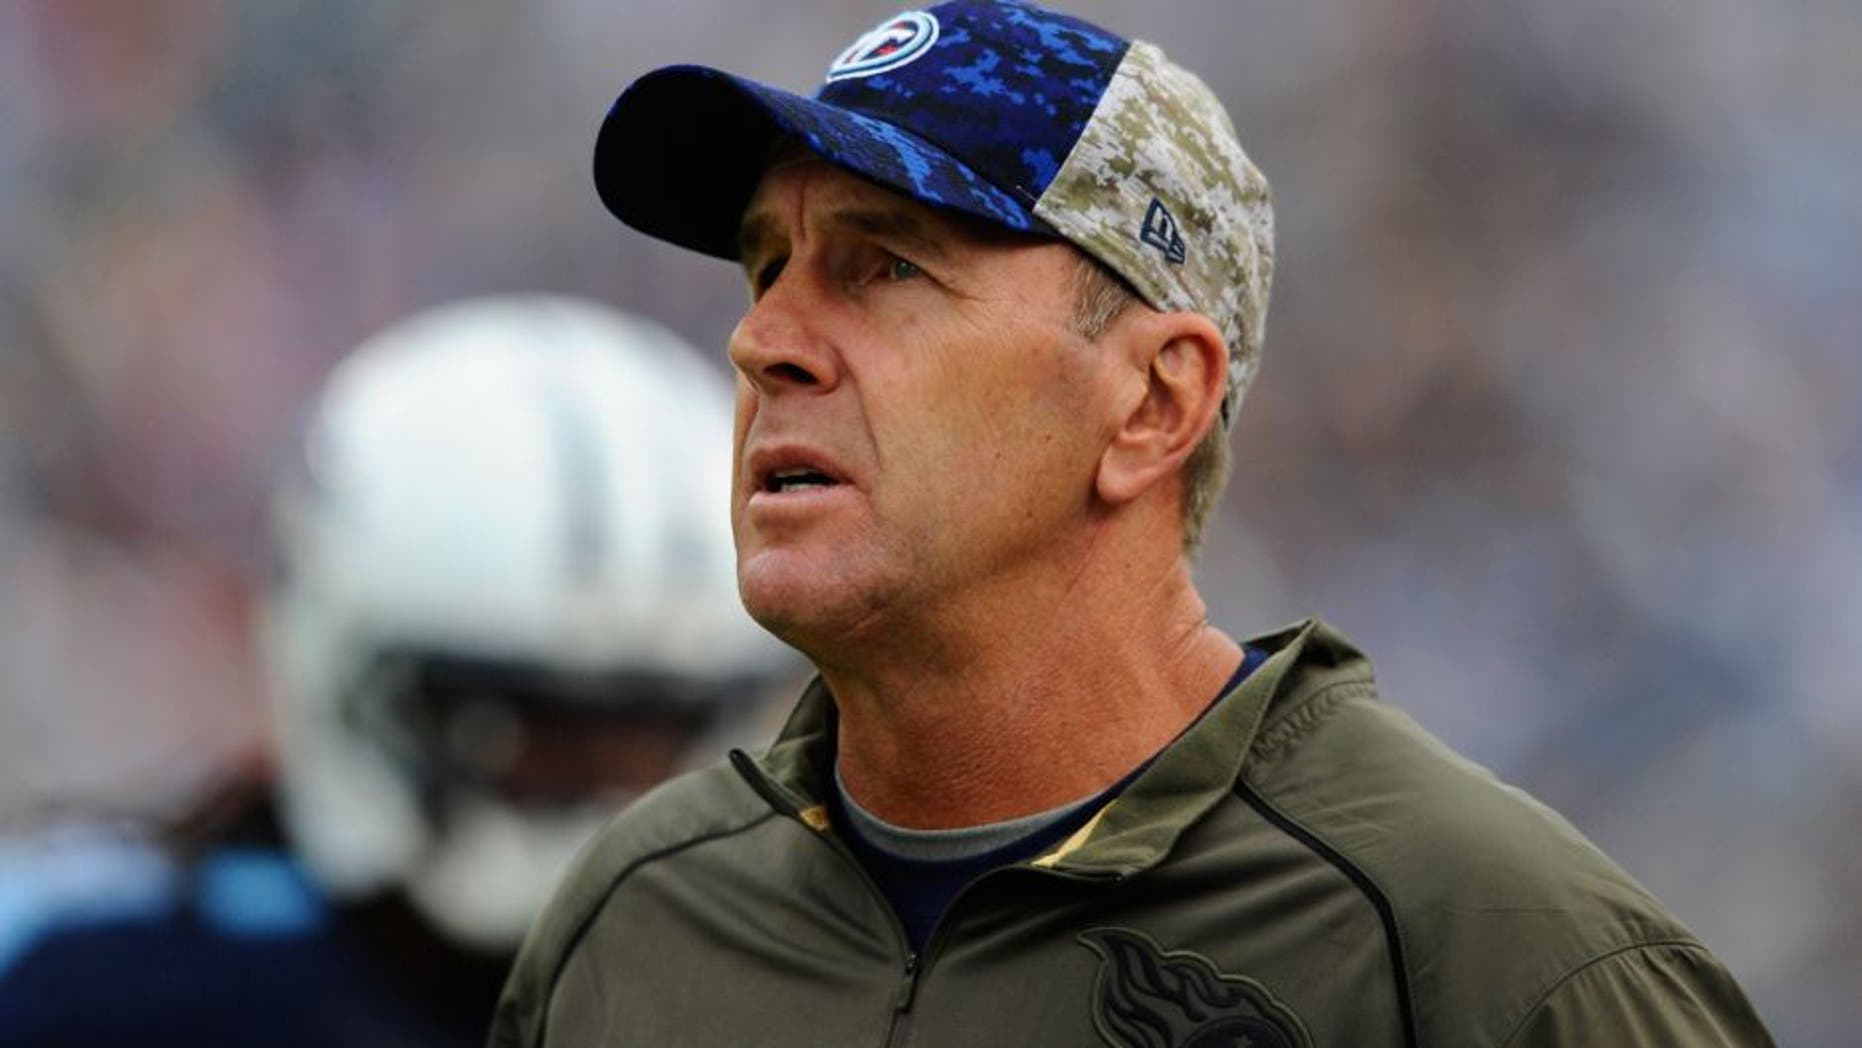 Nov 15, 2015; Nashville, TN, USA; Tennessee Titans interim head coach Mike Mularkey during the second half against the Carolina Panthers at Nissan Stadium. The Panthers won 27-10. Mandatory Credit: Christopher Hanewinckel-USA TODAY Sports